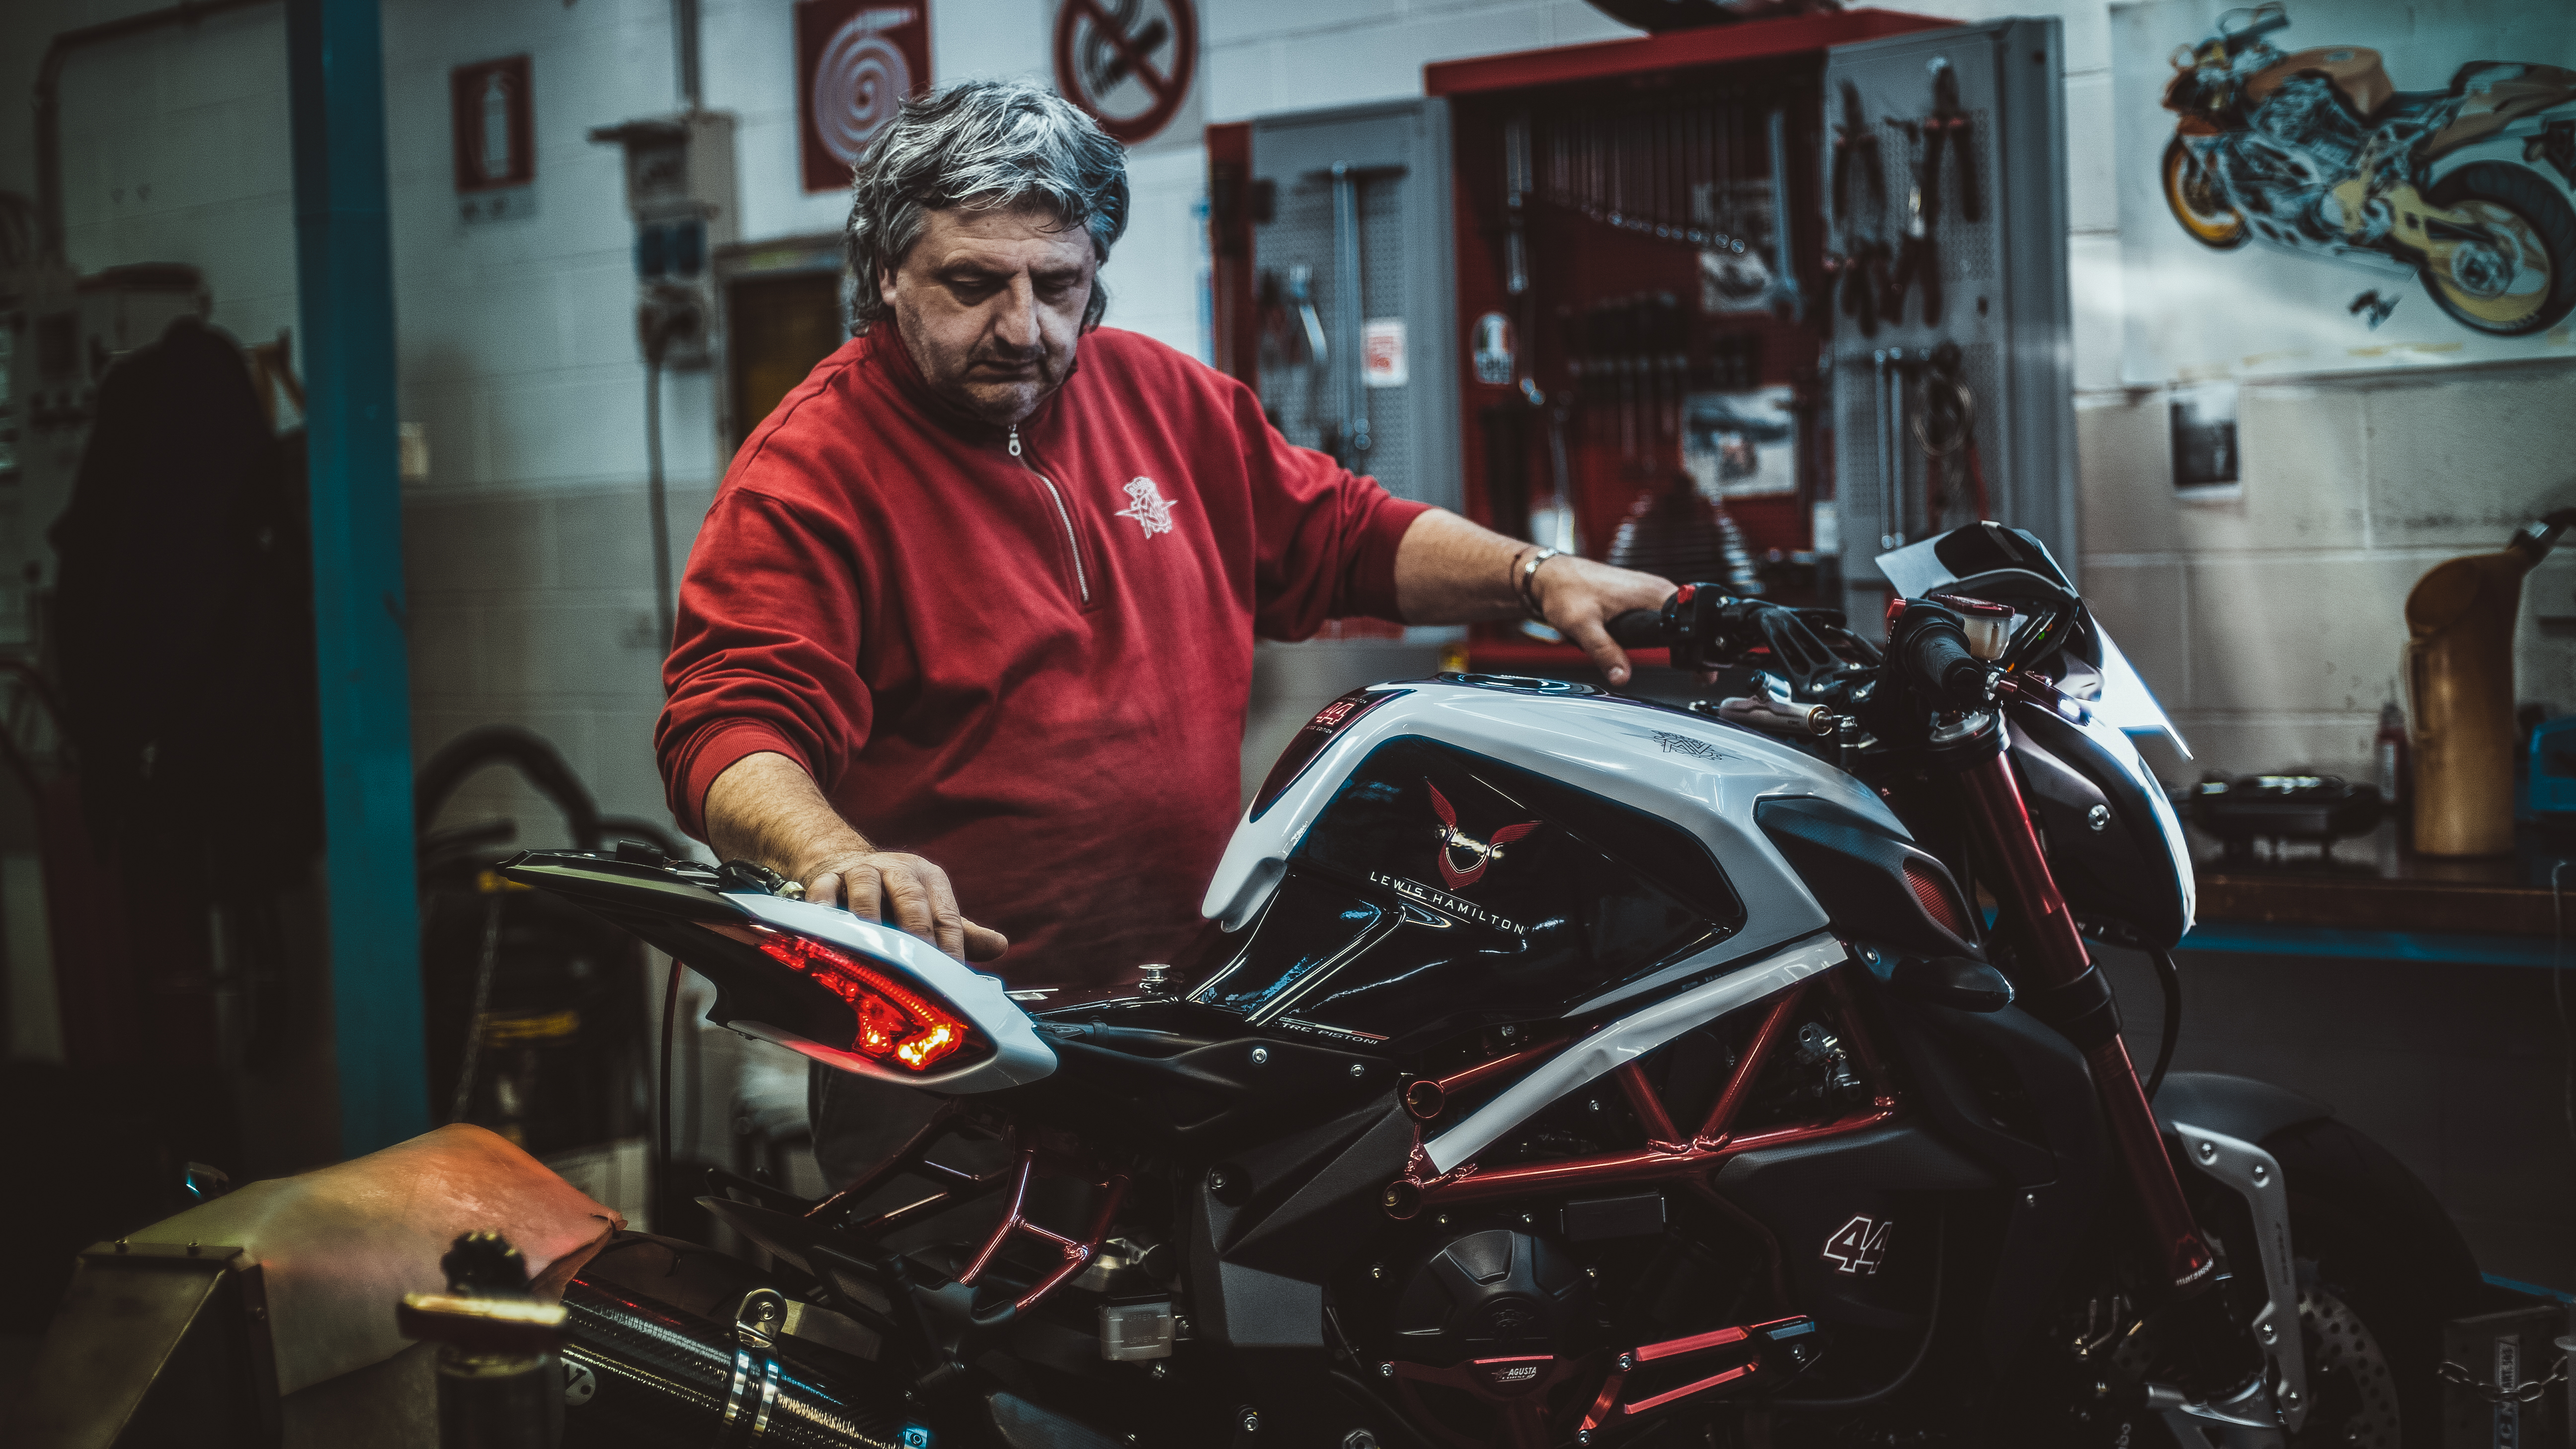 MV AGUSTA AND MOTUL: IT'S NOT ABOUT THE DESTINATION; IT'S ALL ABOUT THE JOURNEY.